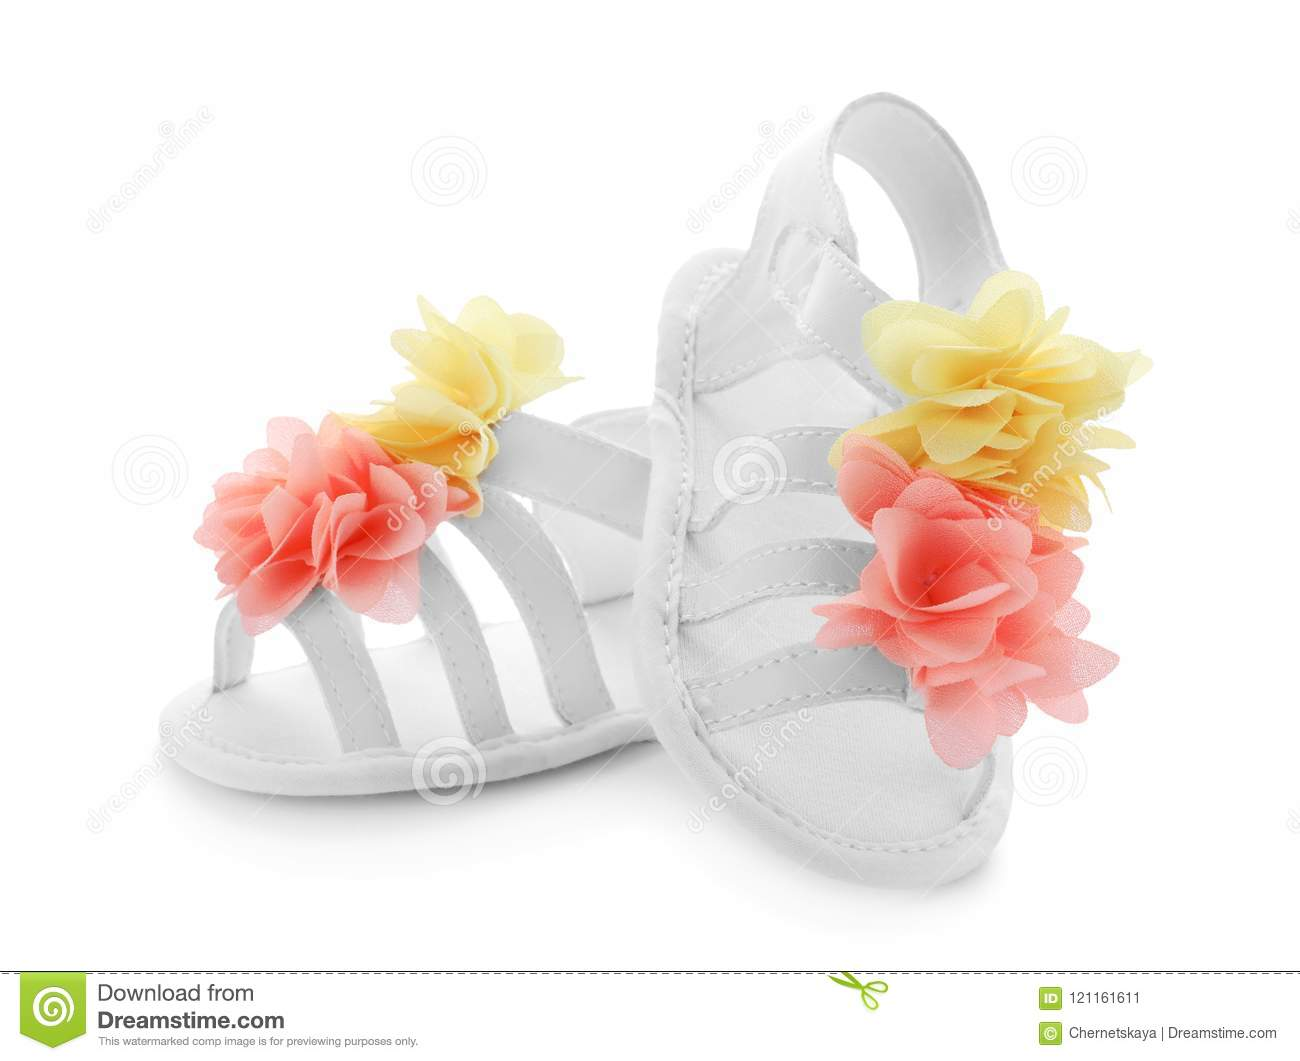 7d39d9608544e5 Pair Of Baby Sandals Decorated With Flowers Stock Image - Image of ...